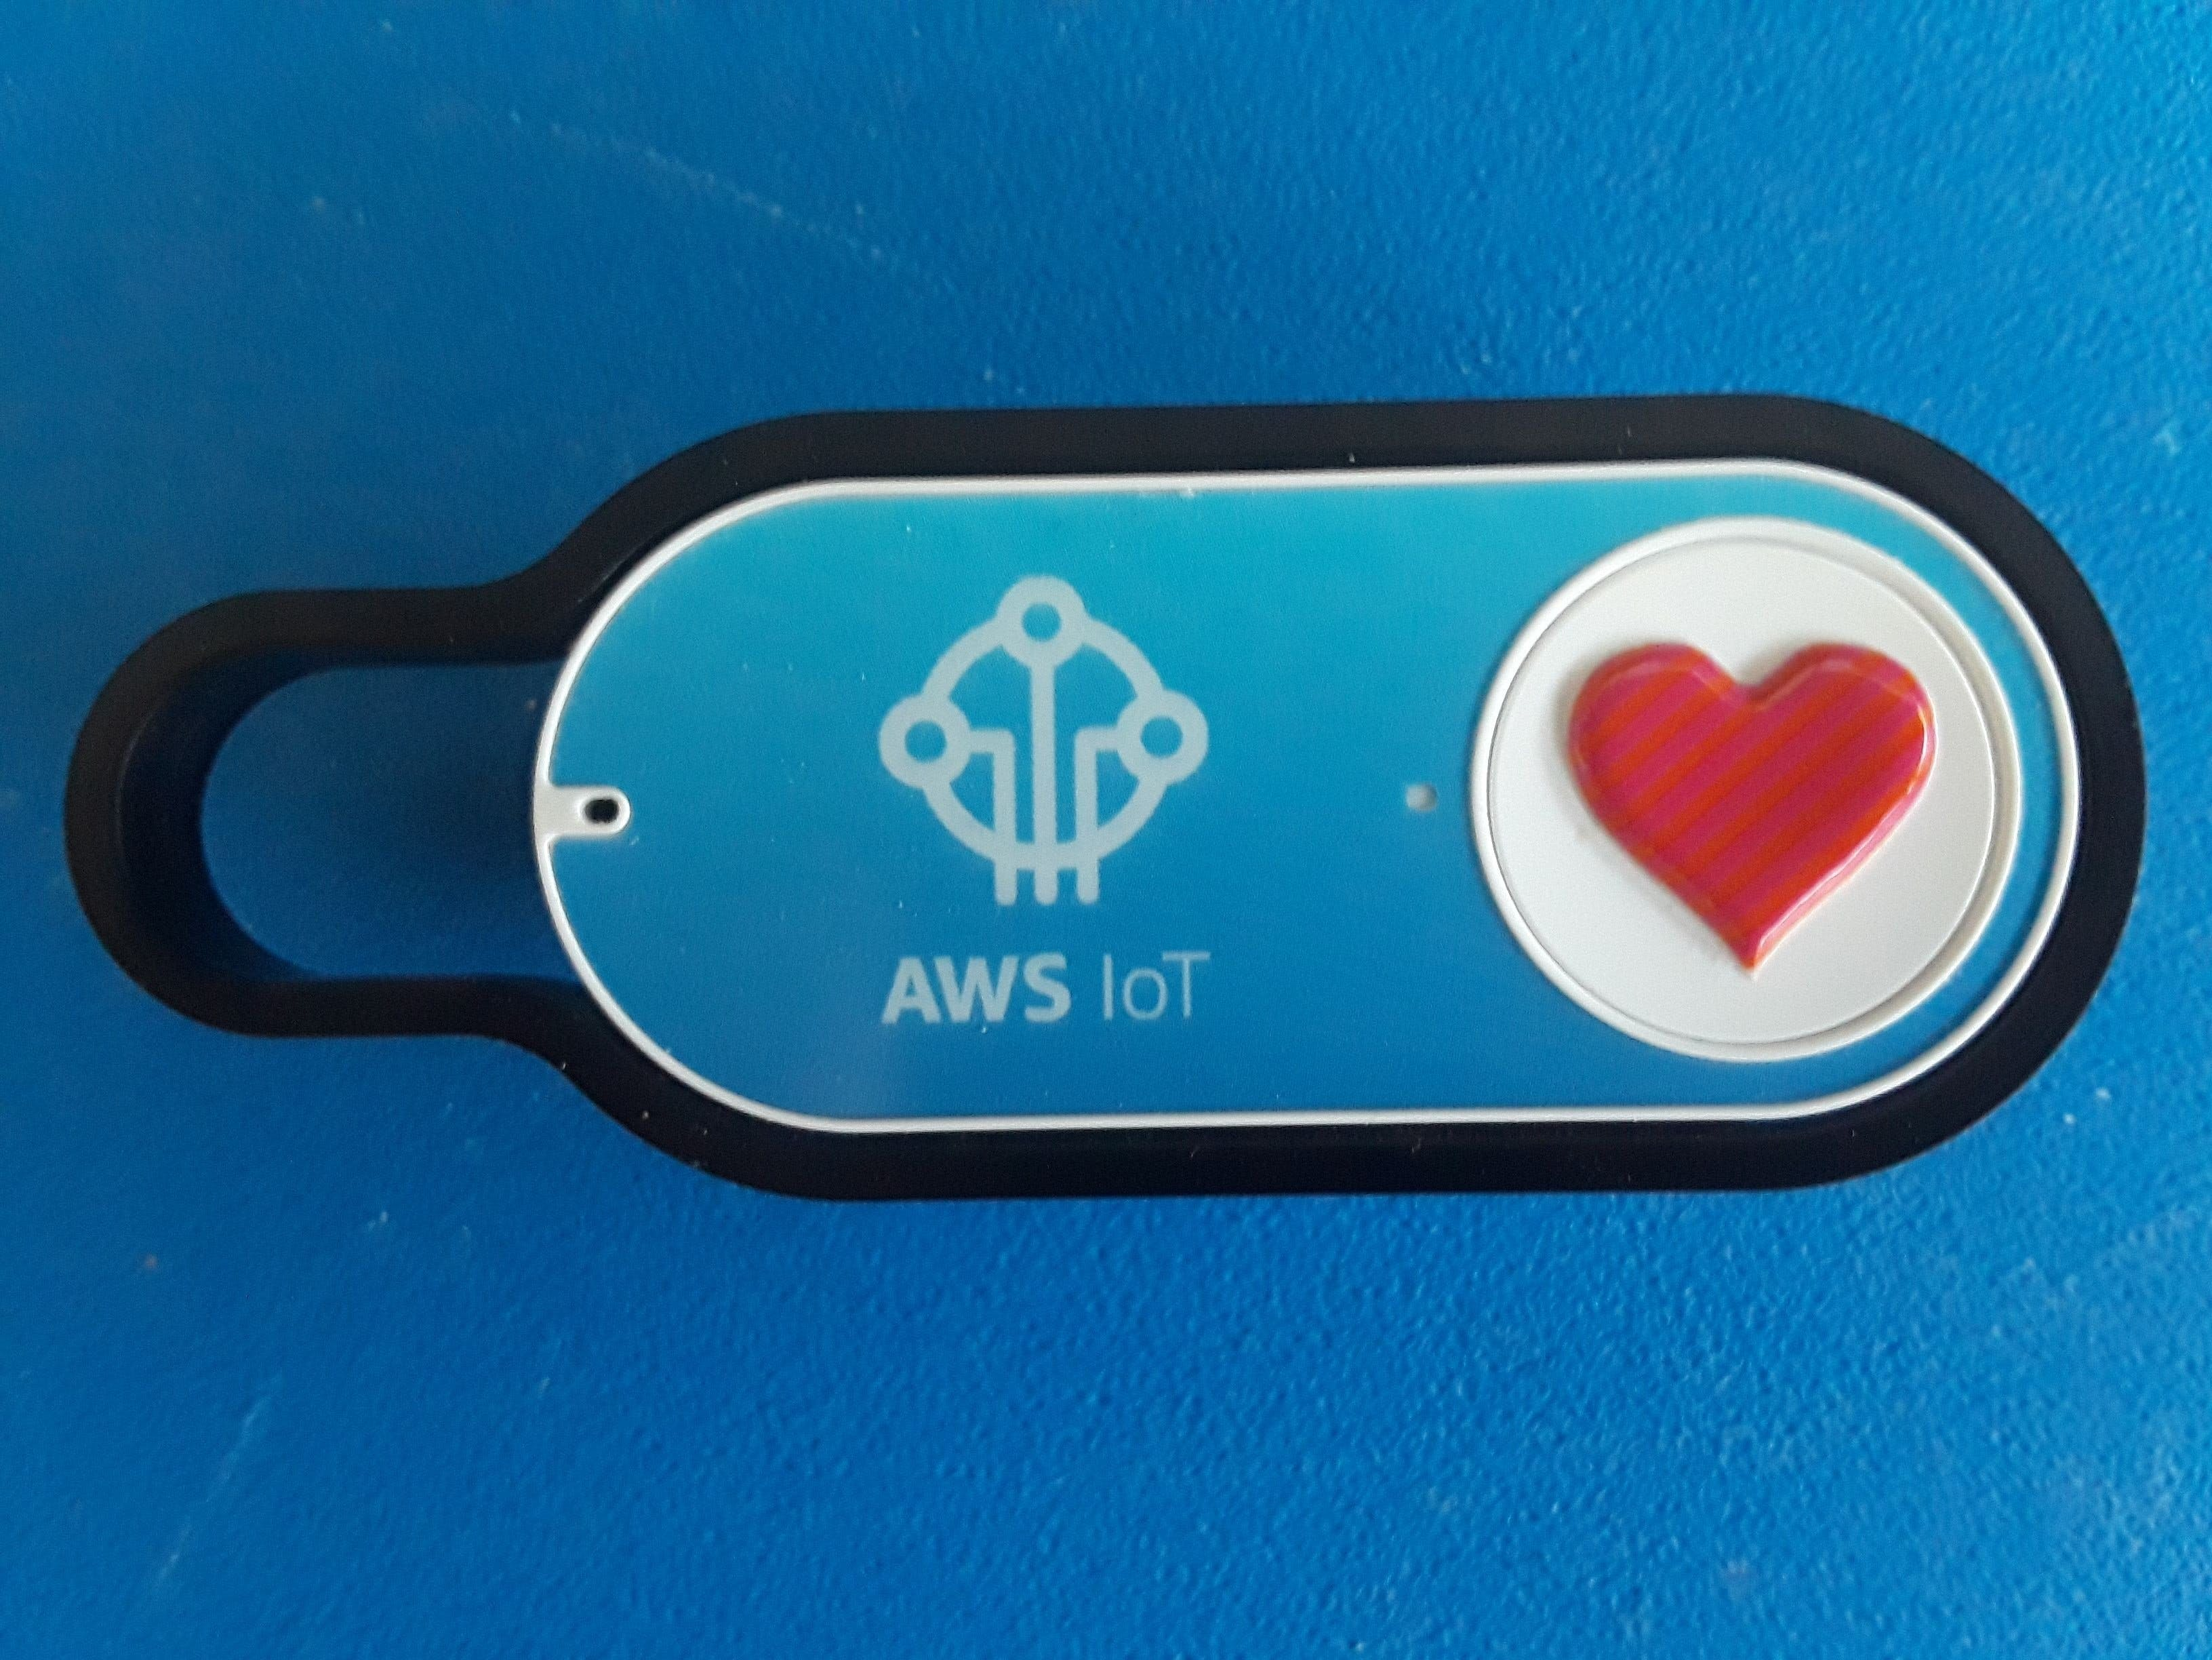 AWS IOT 'Easy Button' Enhances Your Relationship!